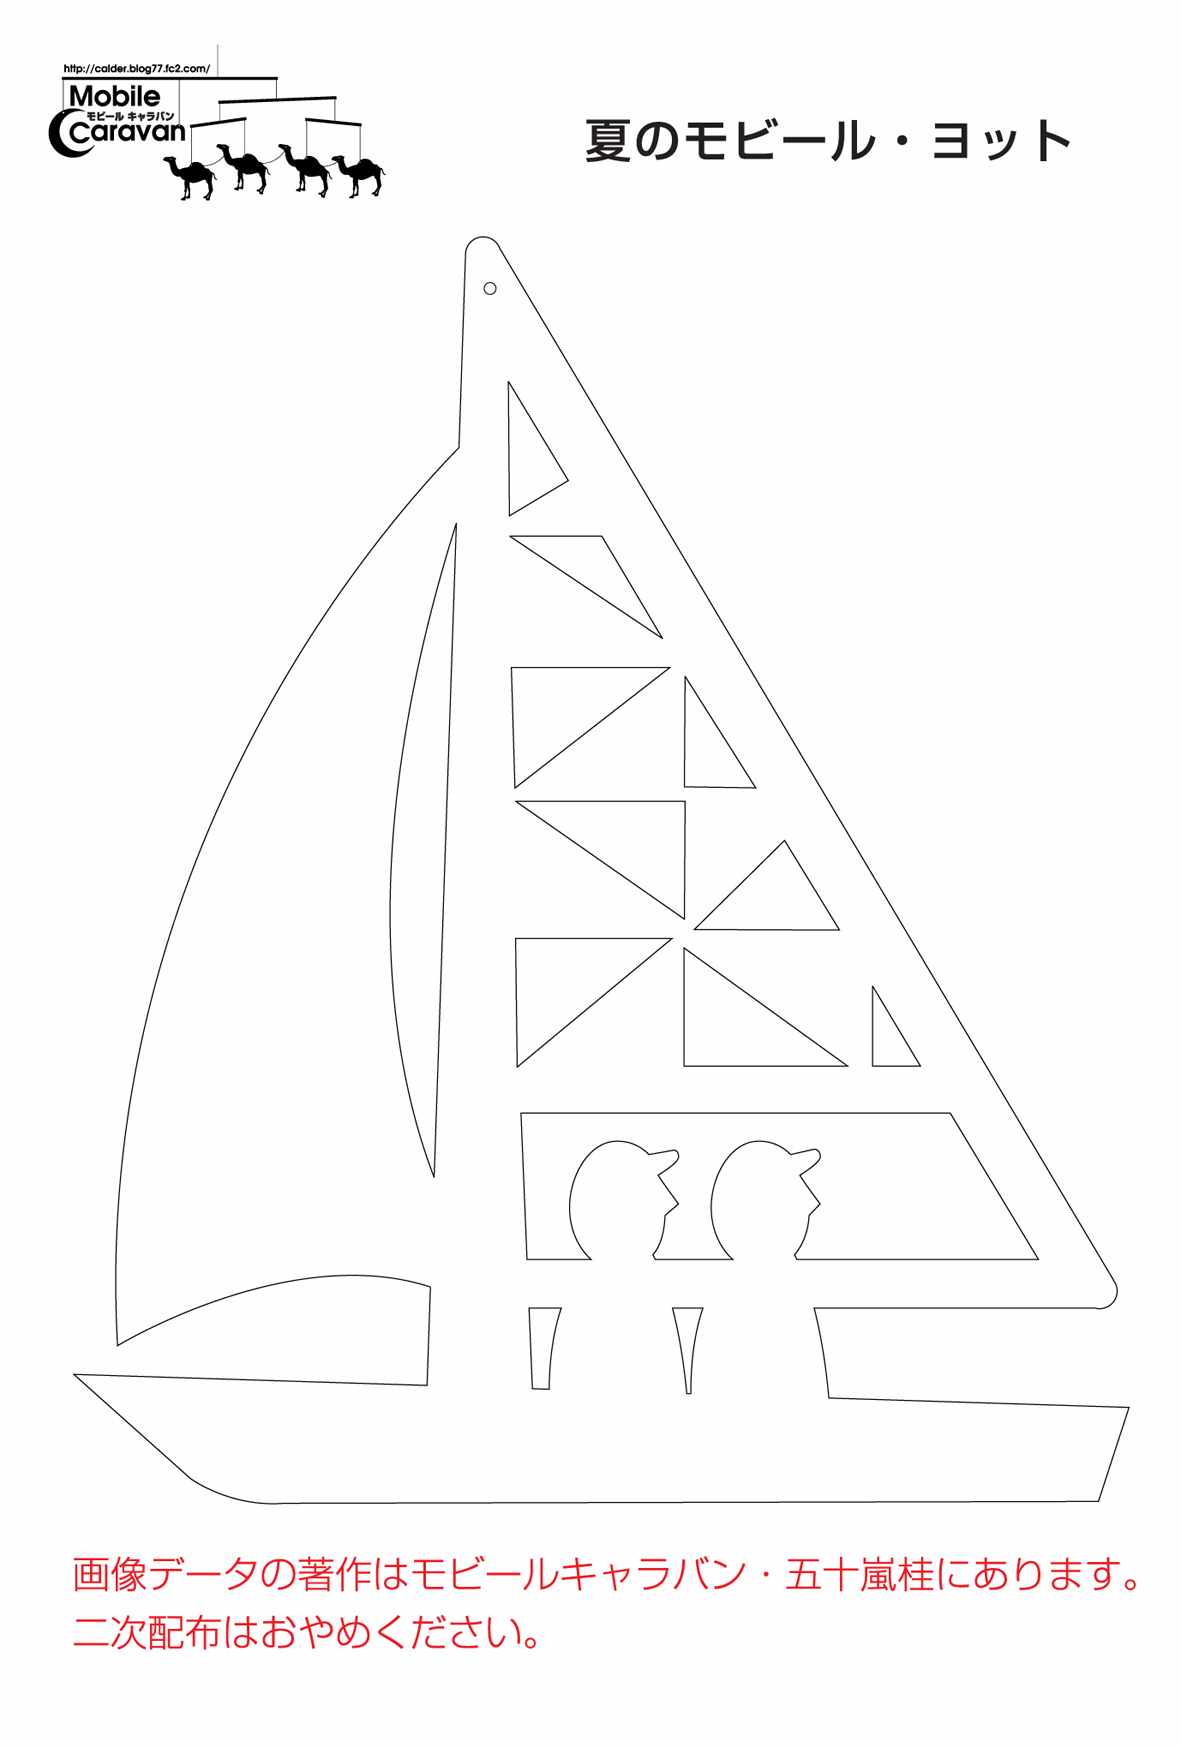 yacht_triangle.jpg